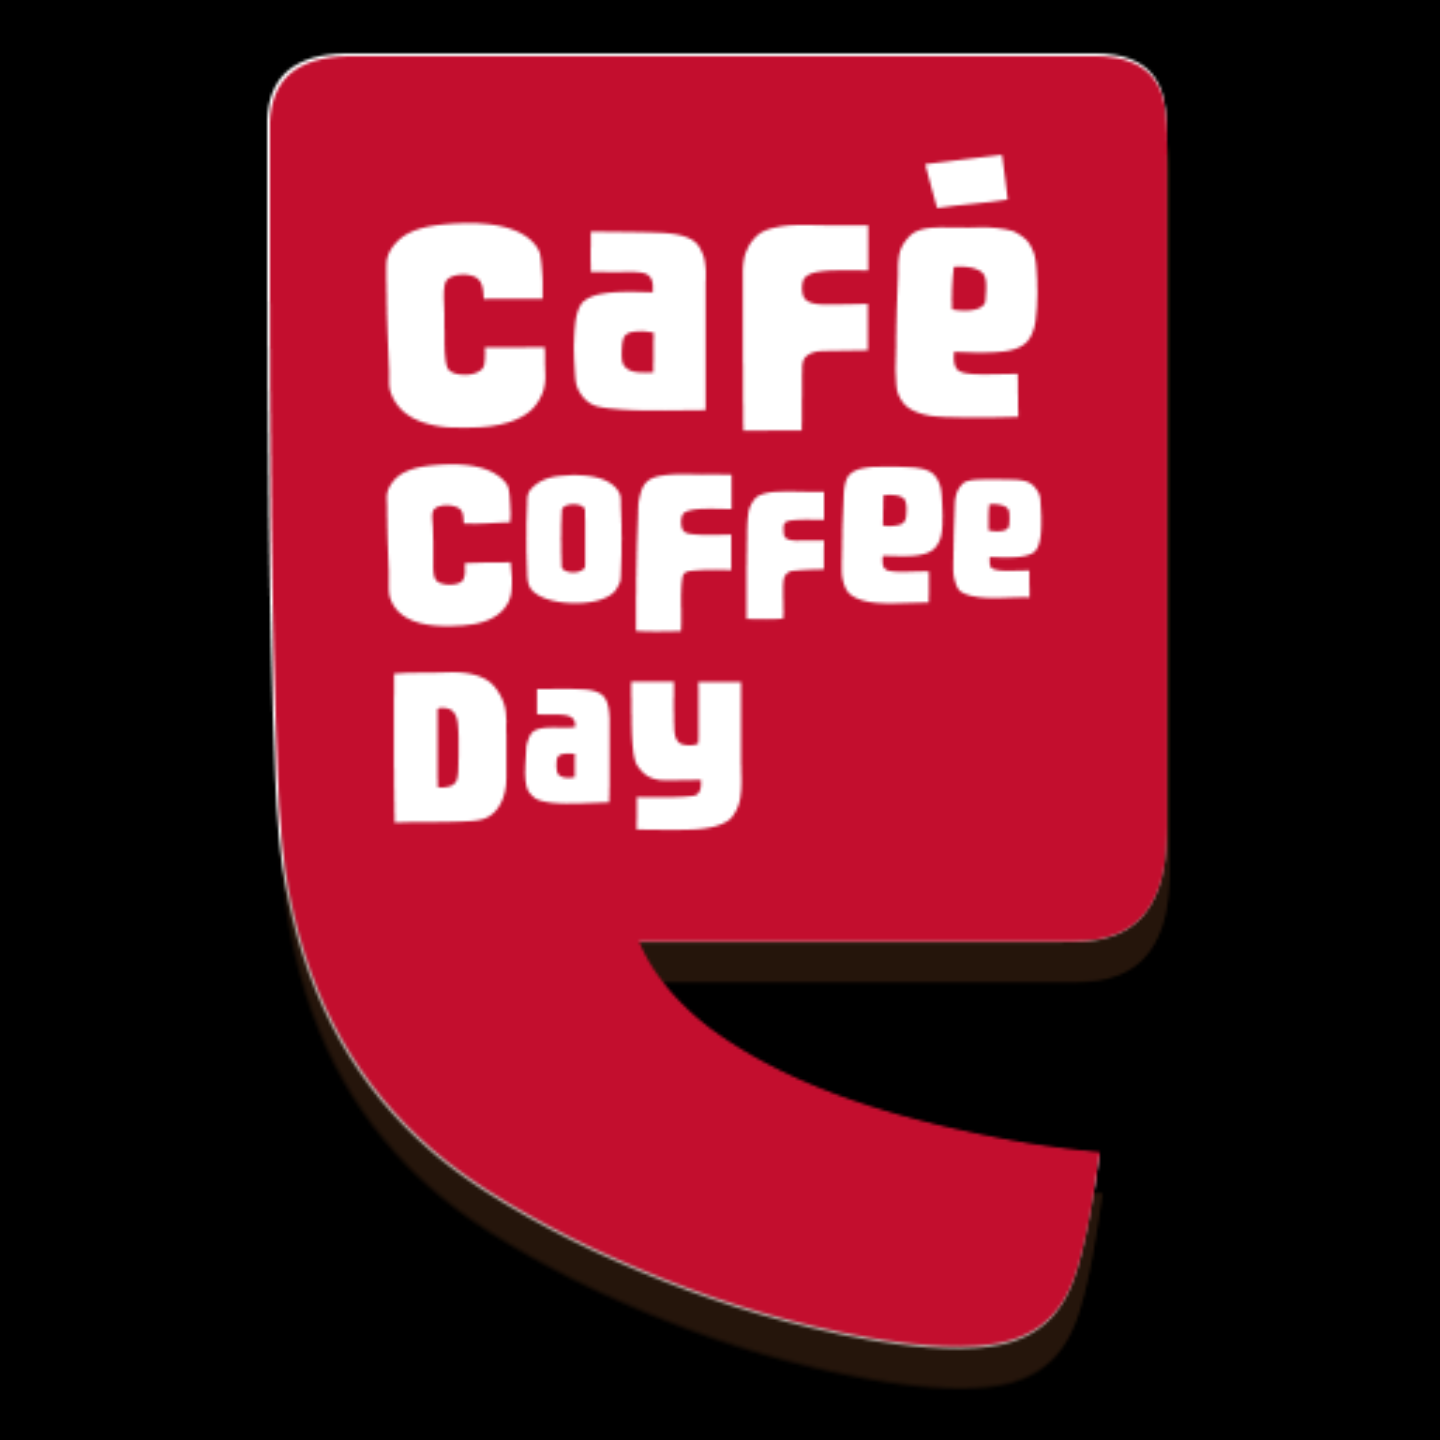 CaFé CoFFee Day App.